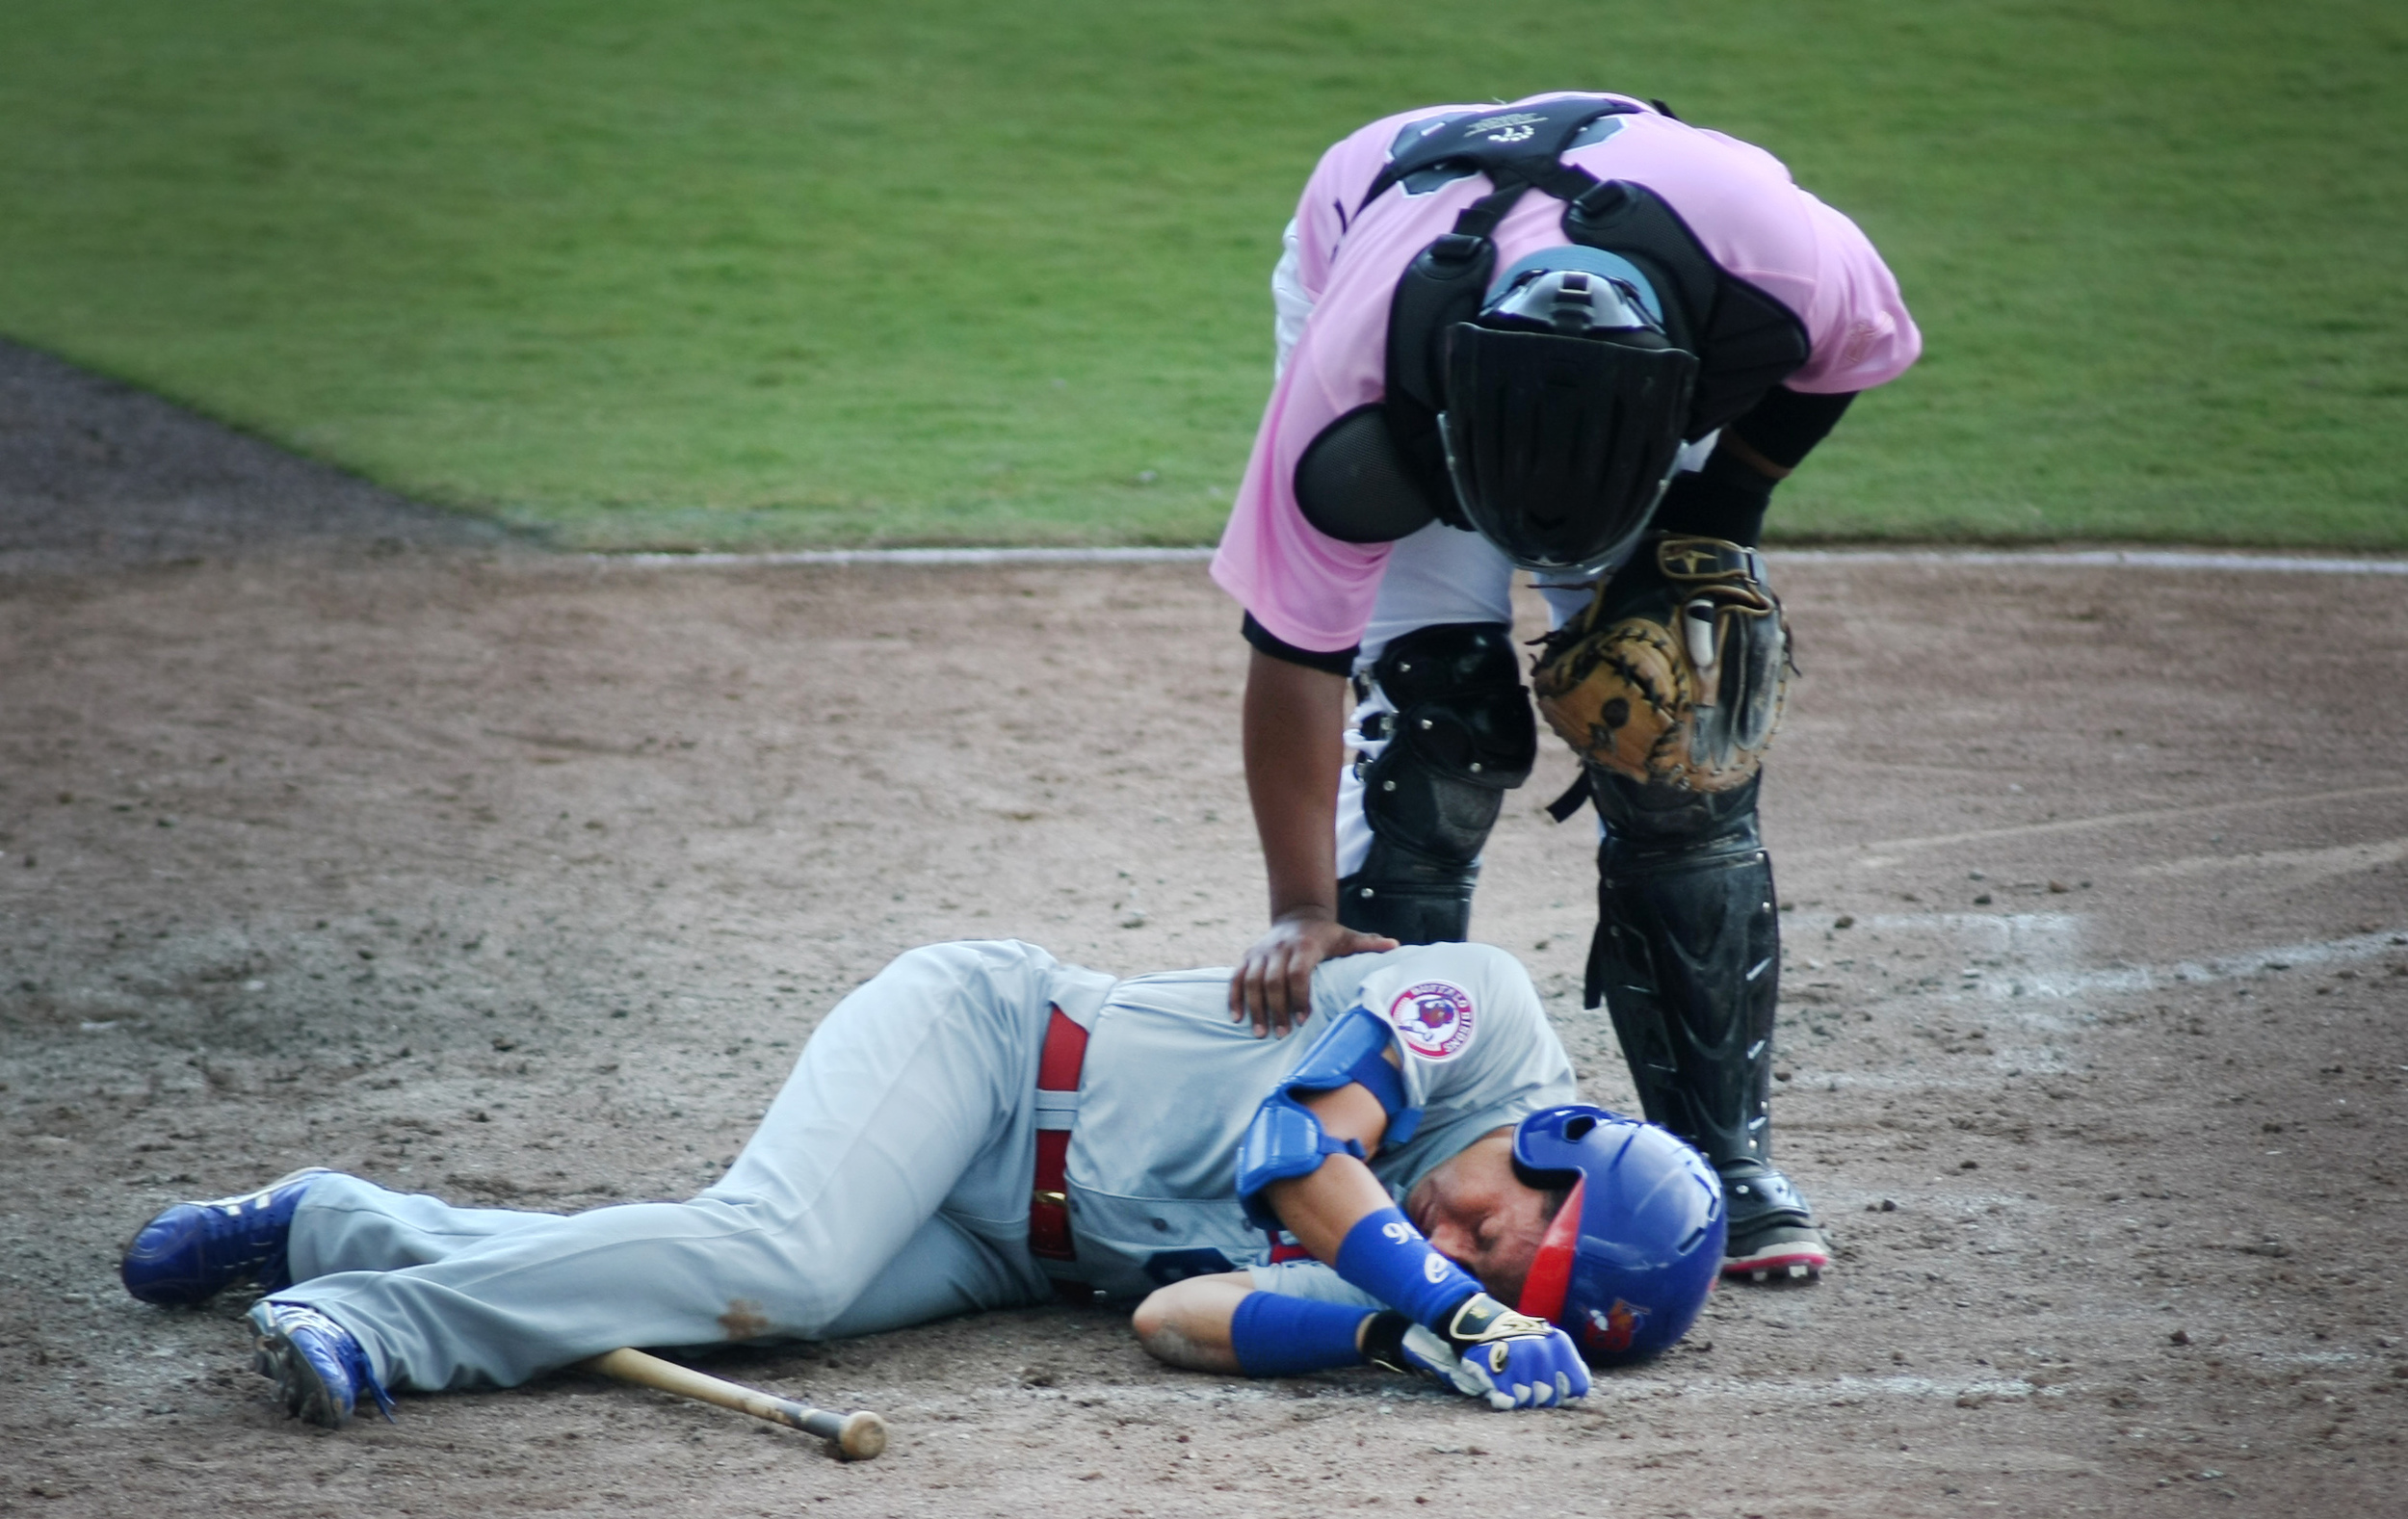 Tides catcher Audry Perez tends to Buffalo's Munenori Kawasaki as he laysmotionless after getting drilled in the head with a fastball in the top of the seventh inning. Kawasaki remained on the ground for several minutes but was then helped off the field, Sunday, May 10, 2015 at Harbor Park in Norfolk.